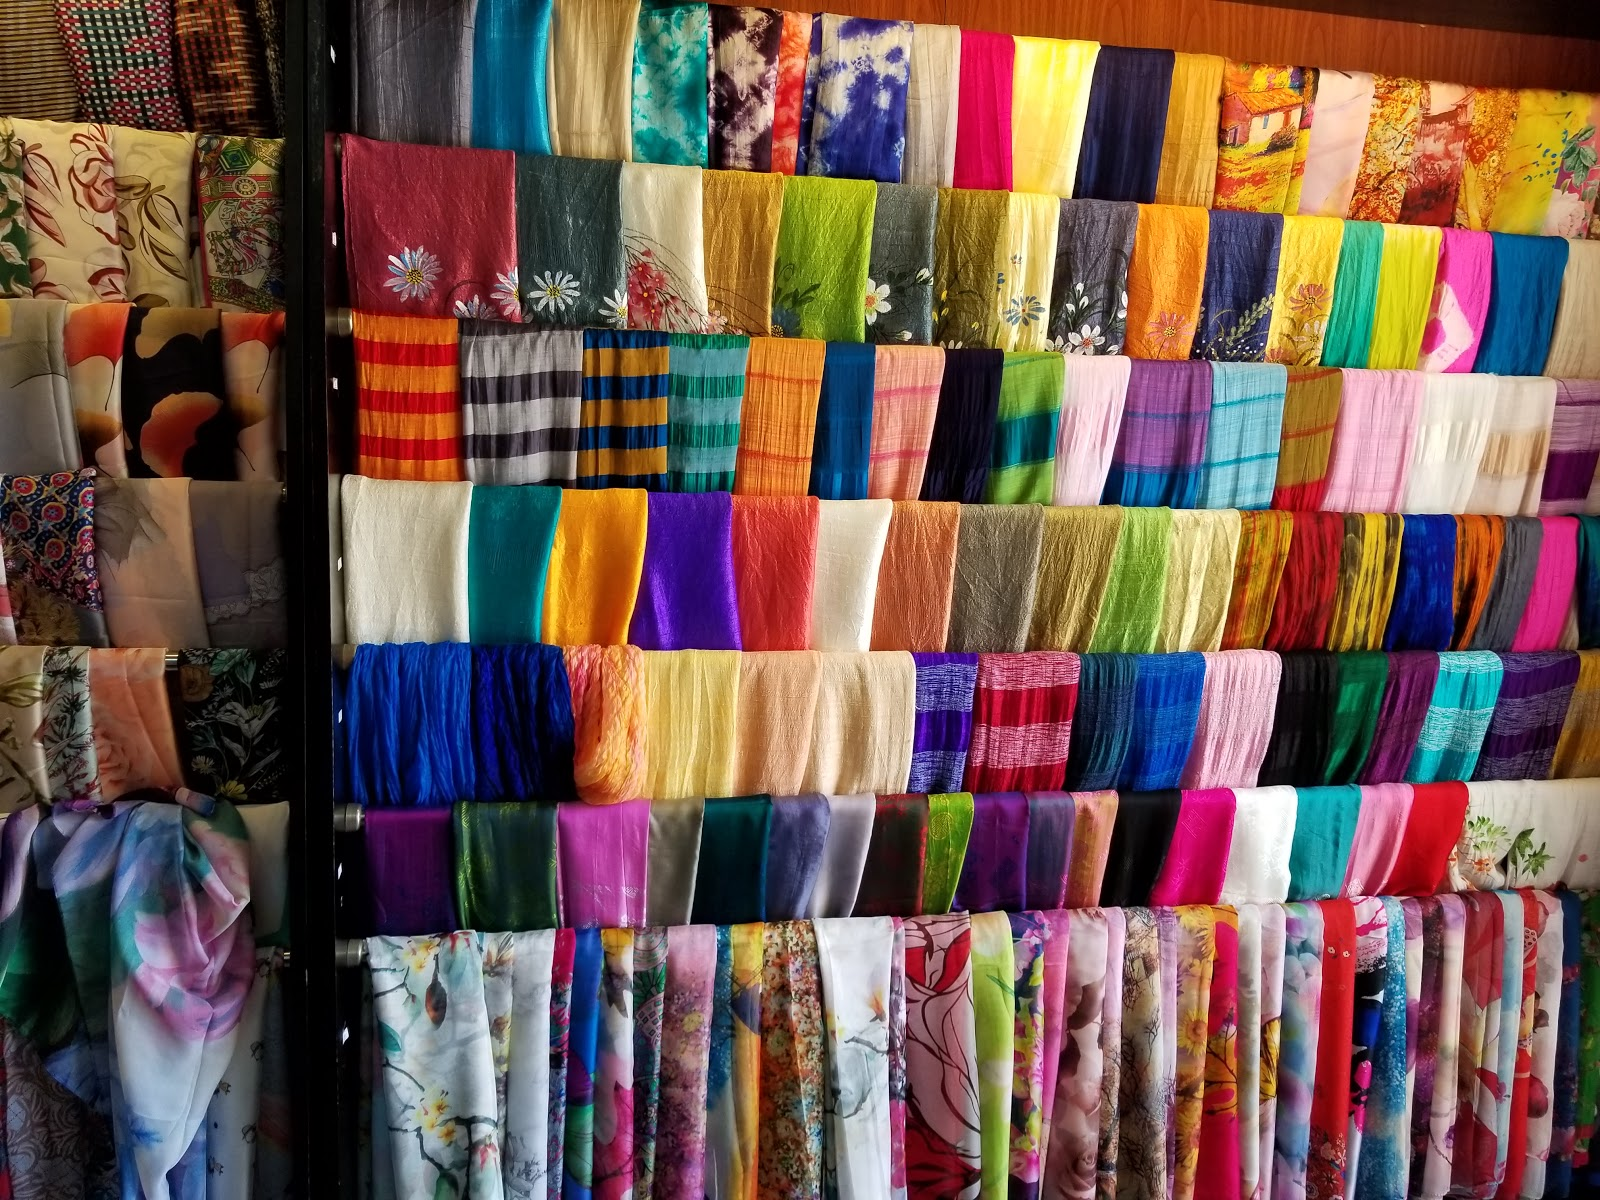 Best Places for Shopping in Hoi An - Scarf